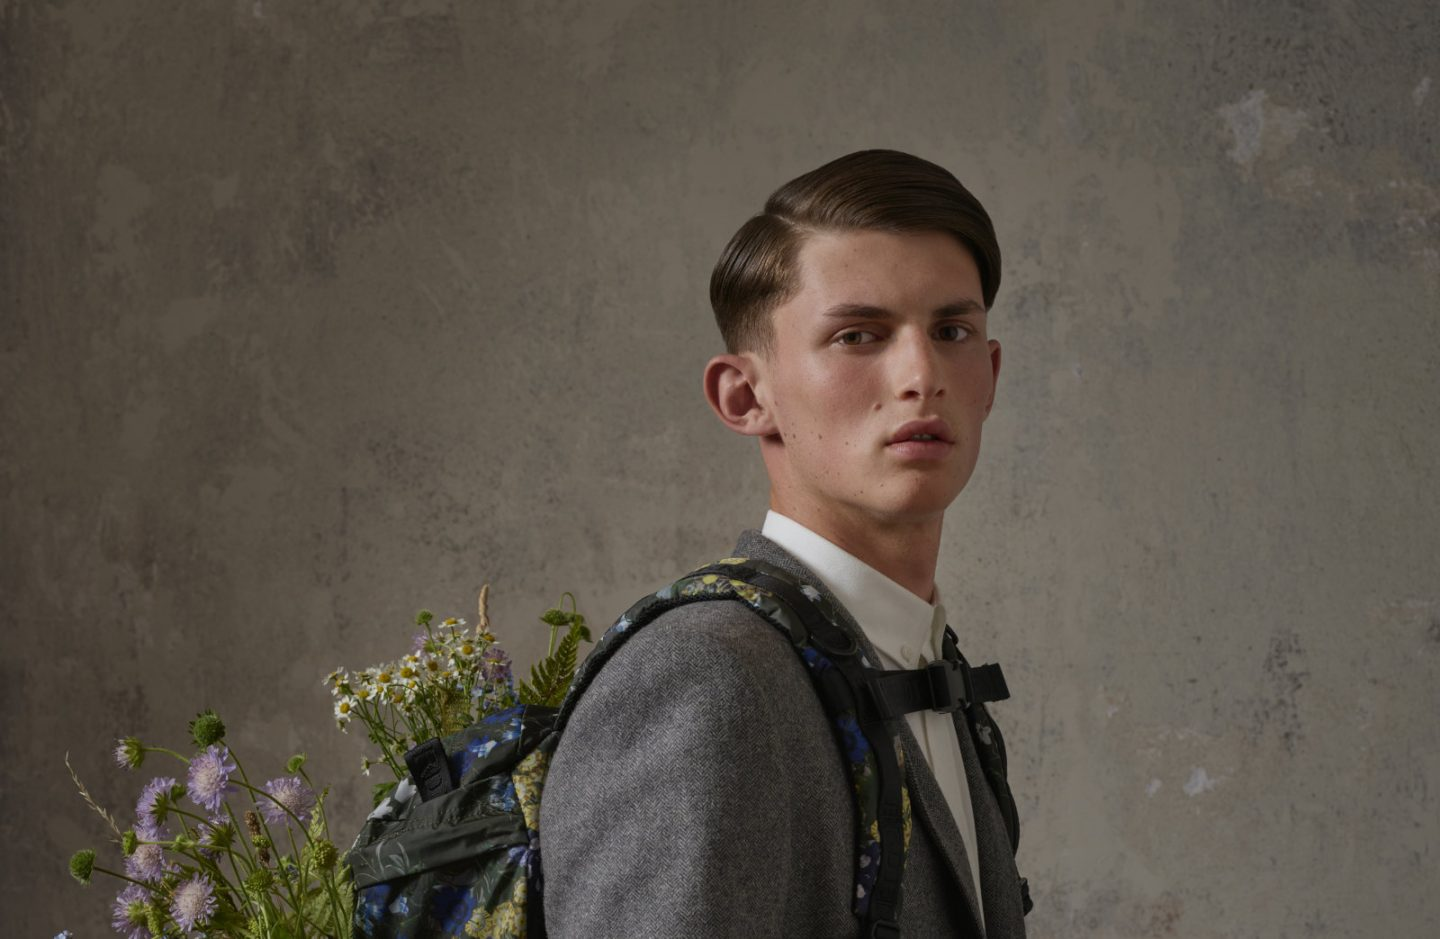 Erdem × H&M look book images revealed